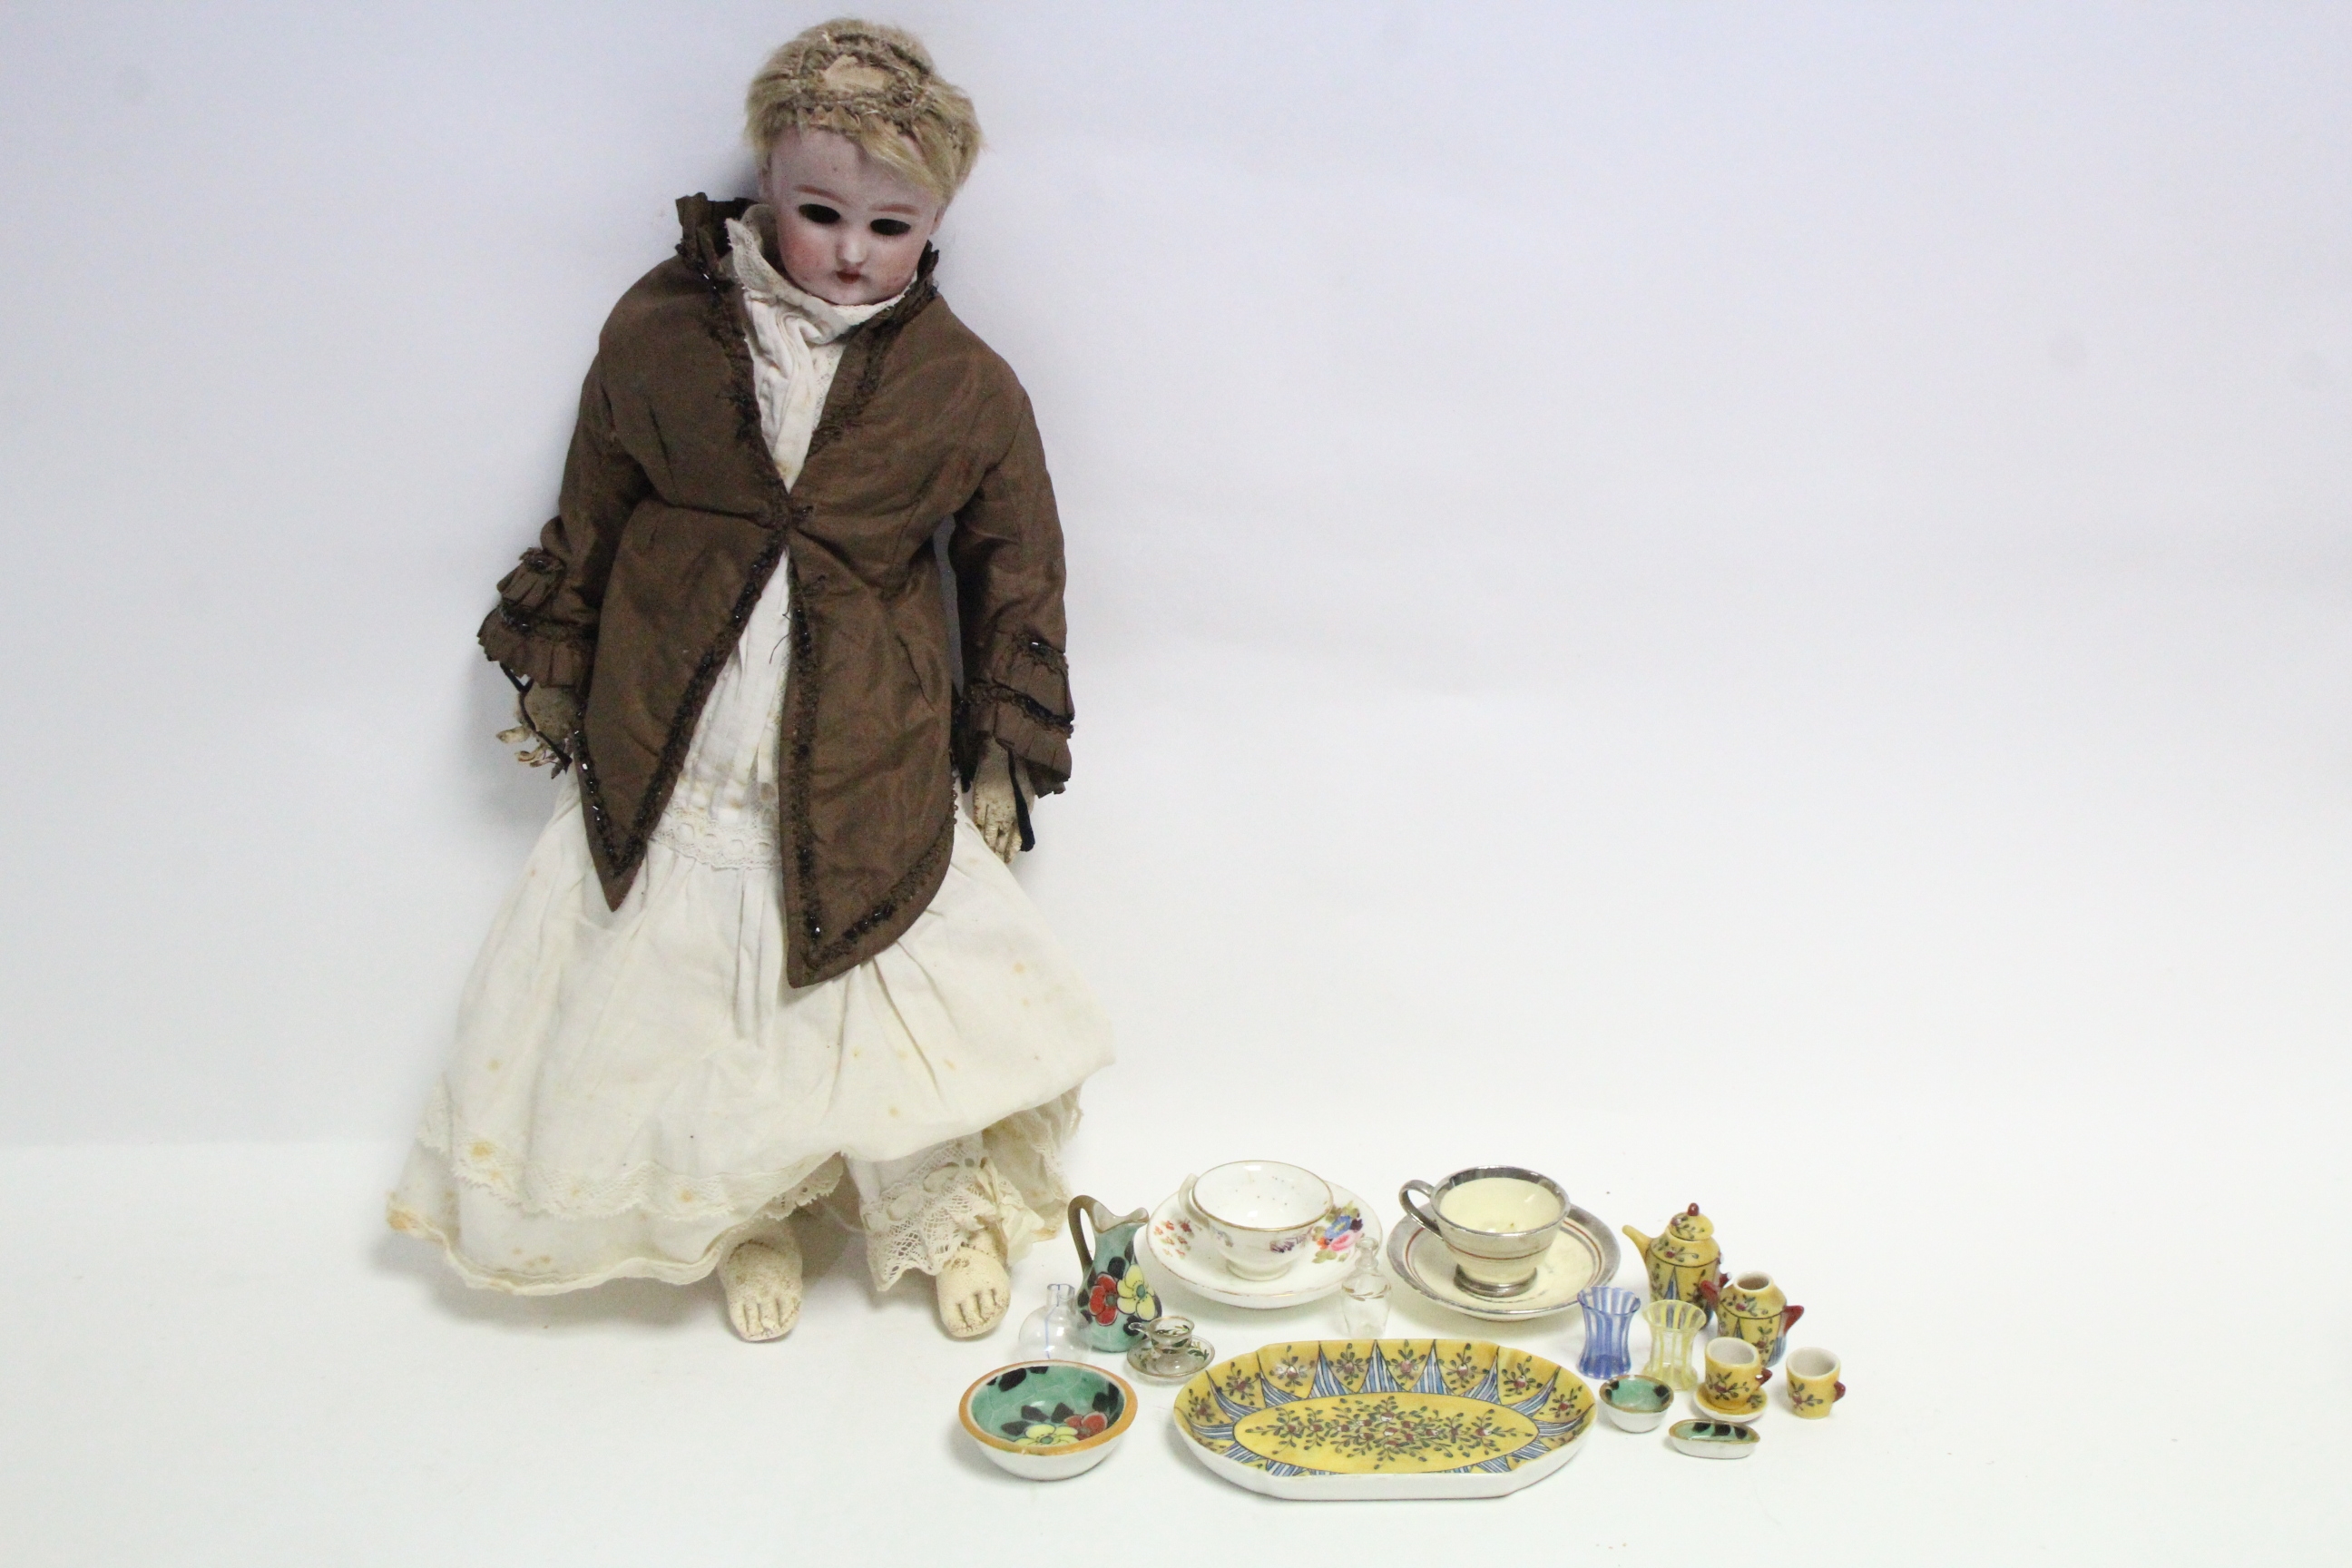 Lot 326 - A German bisque head girl doll (41019 D. E. P.) with sleeping eyes, painted features & kid leather